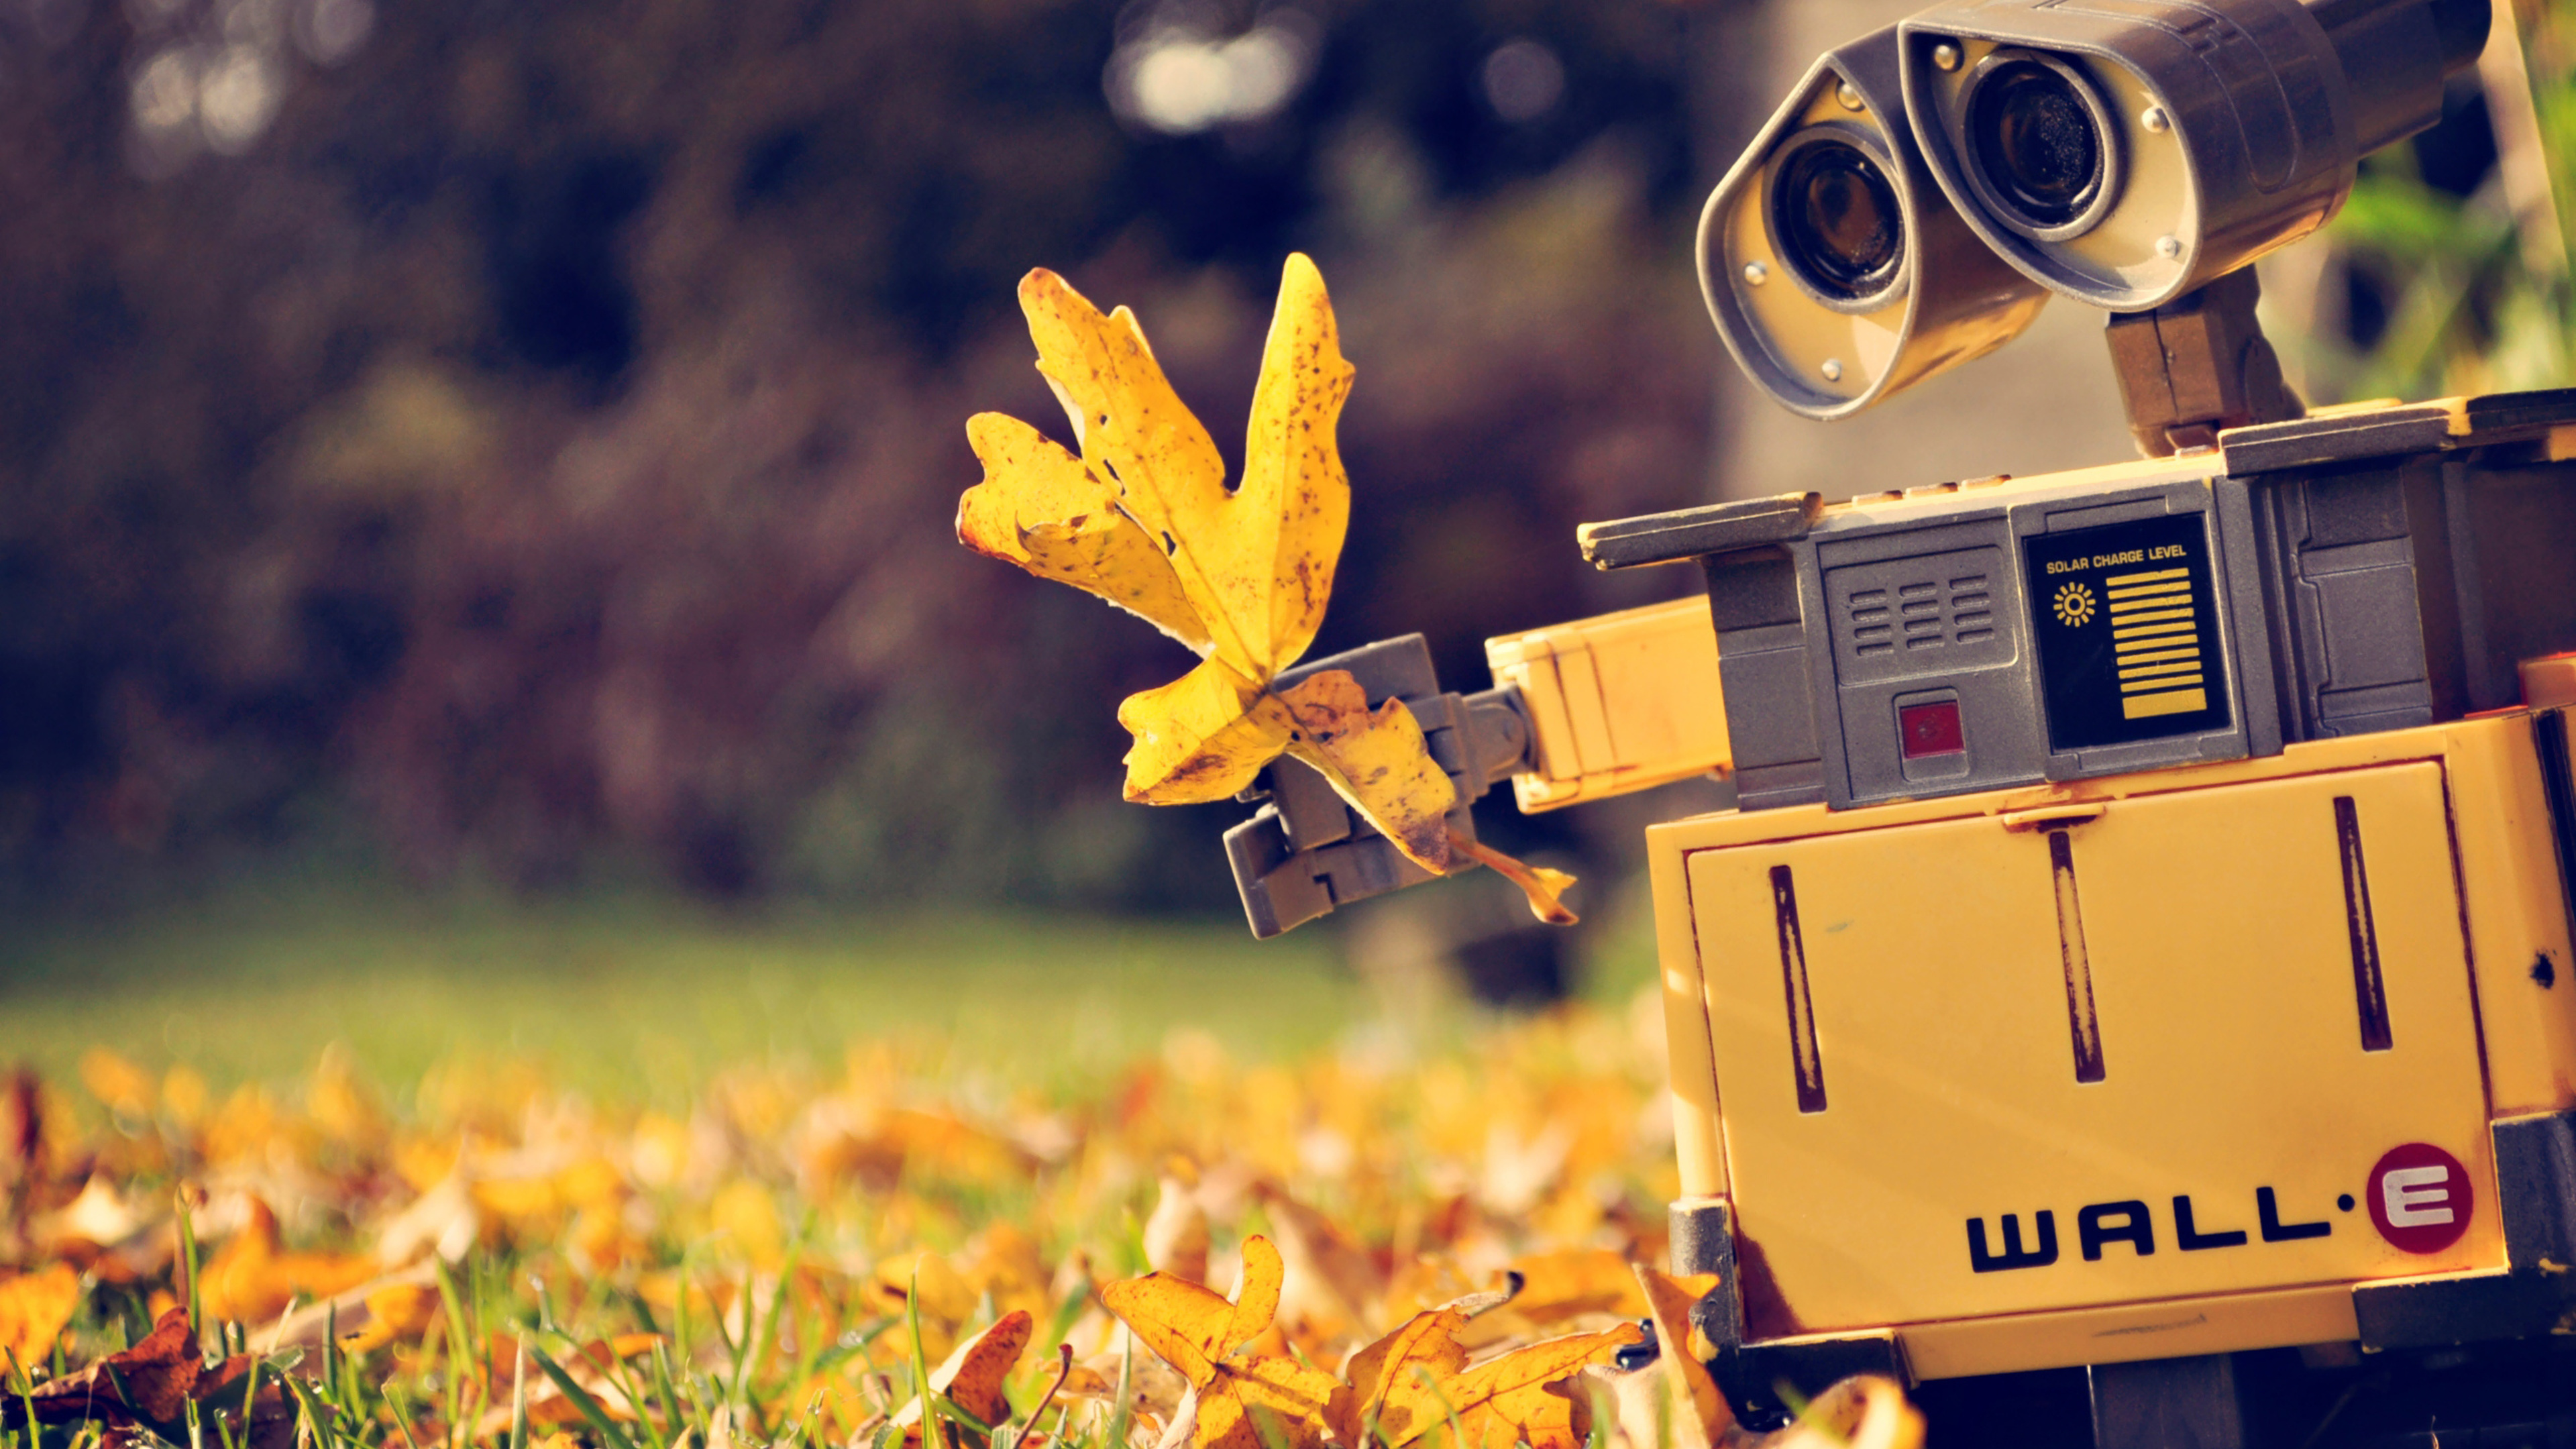 3840x2160 wall e movie 4k hd 4k wallpapers, images, backgrounds